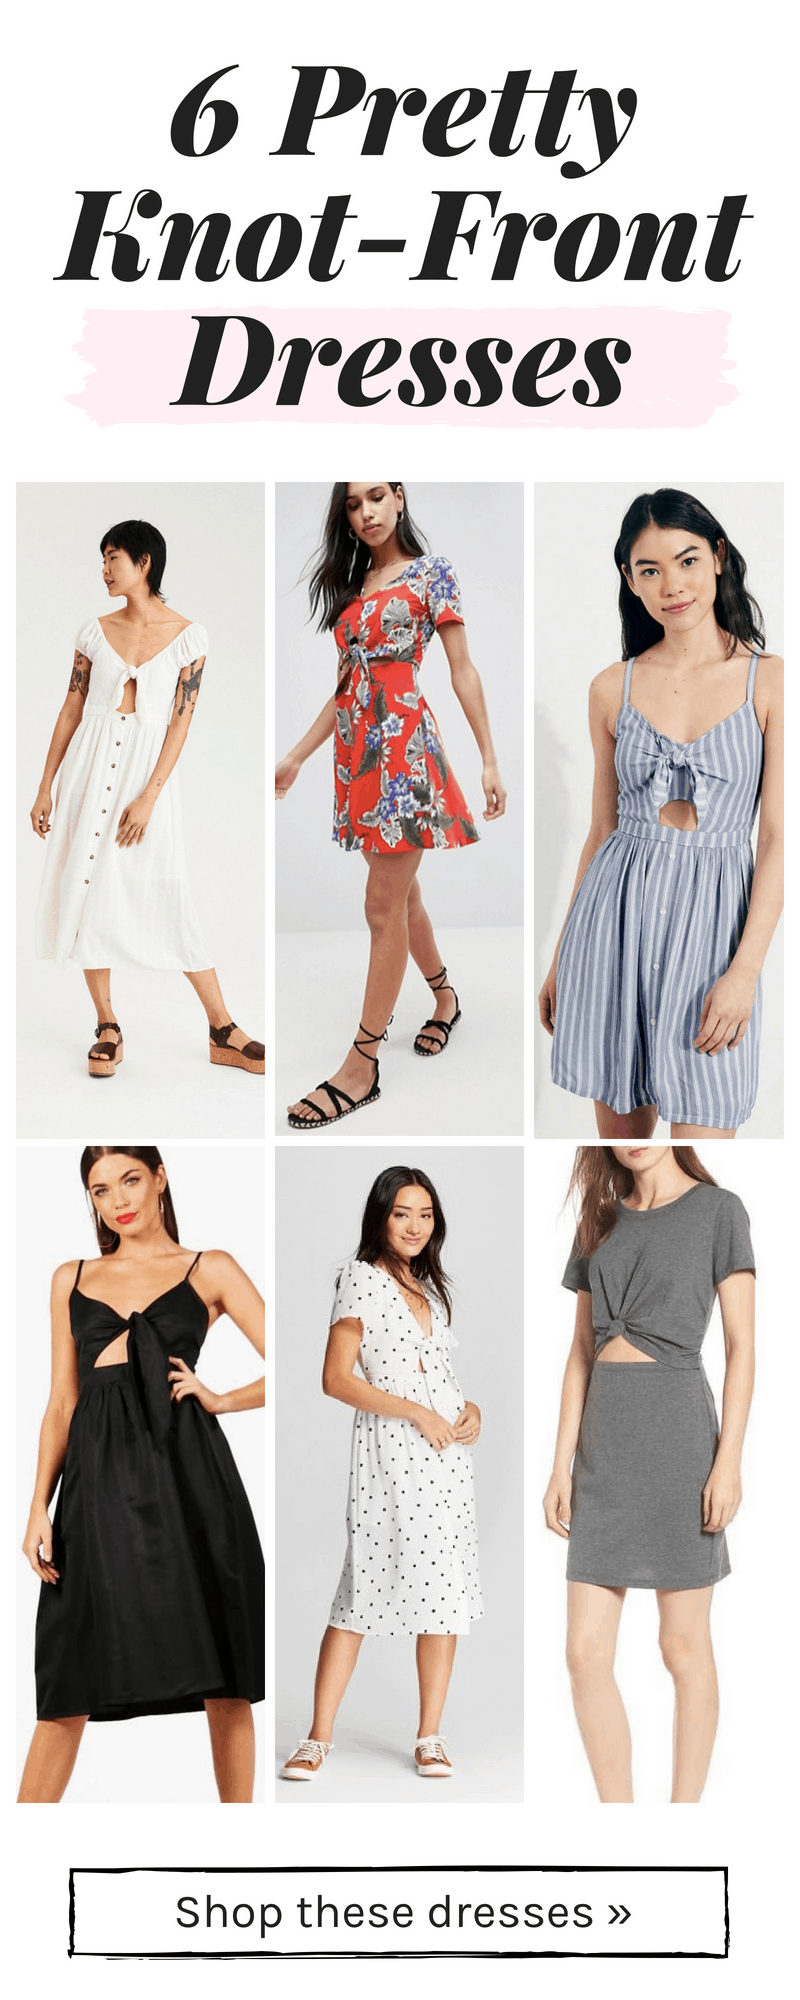 Knot front dresses for summer - here are 6 of our favorite tie front dresses